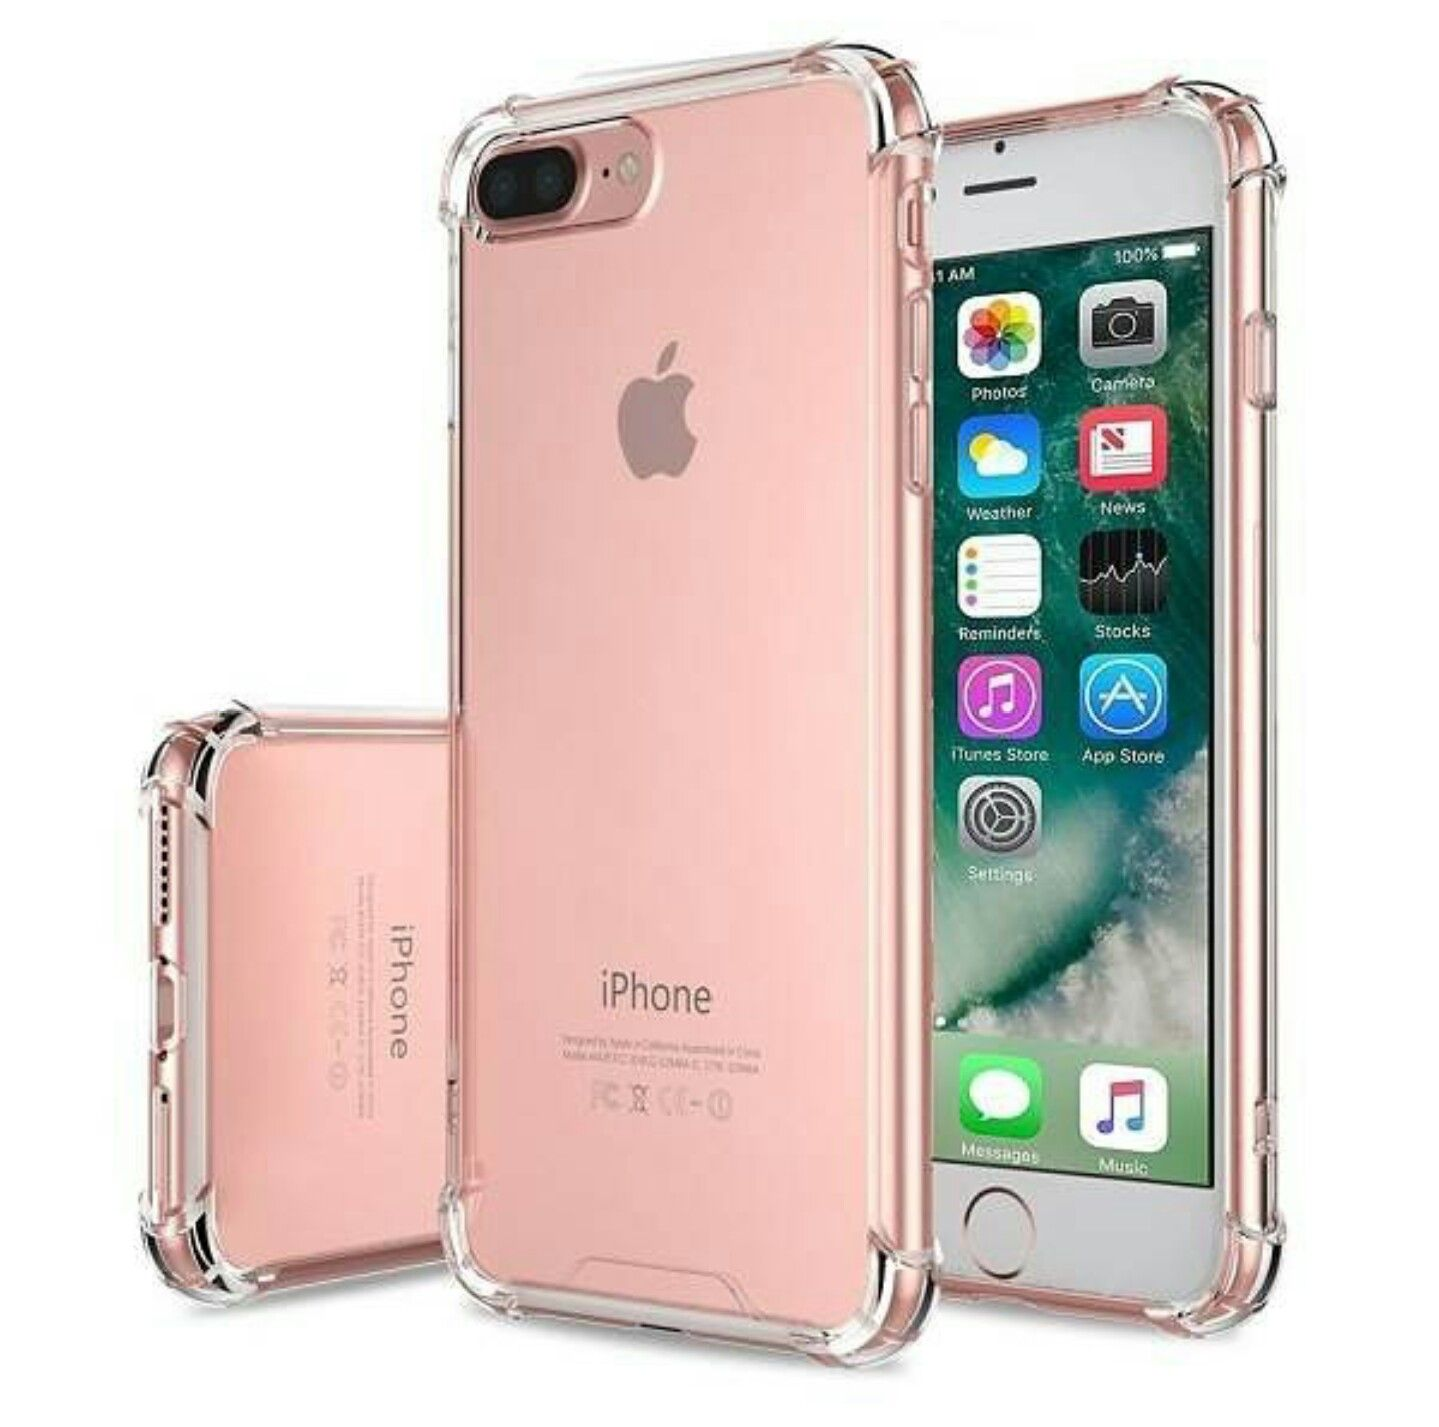 Shock Proof Anti Knock Protective Iphone 7 8 Soft Cases Retailite Iphone Iphone 7 Plus Cases Iphone 7